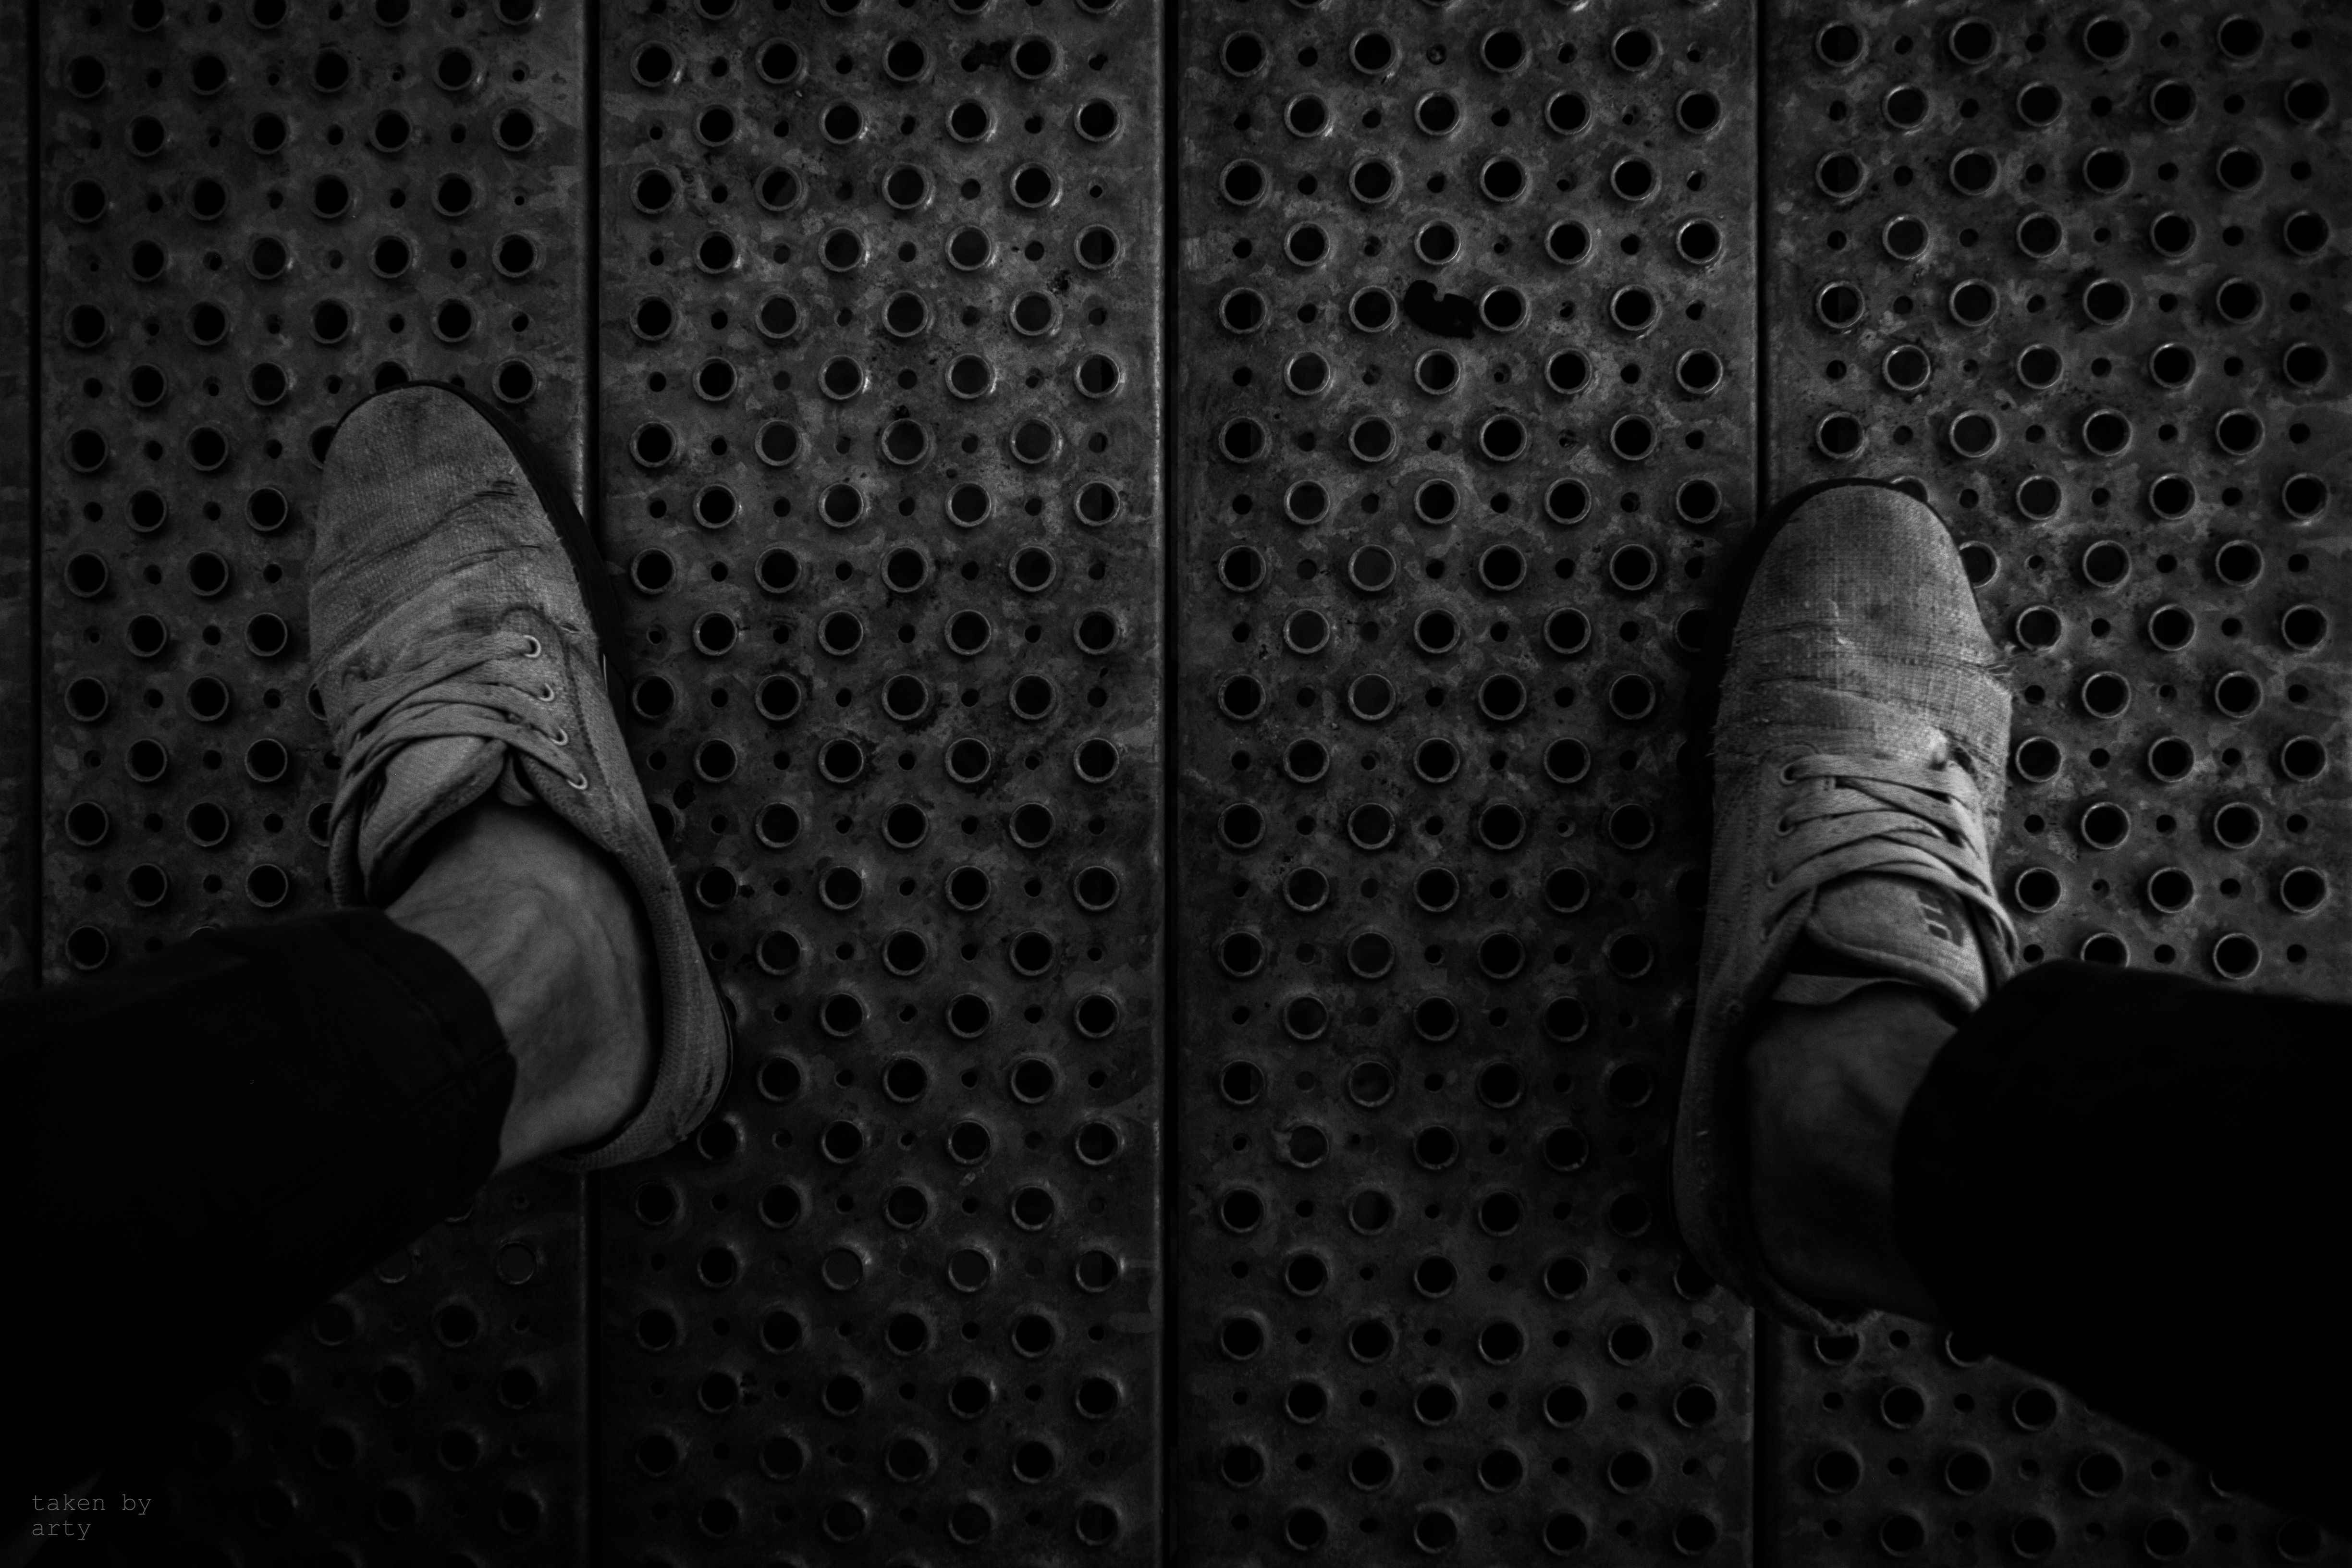 Blackwhite blackandwhite photo photography heavy philosophy artyzuev stranger boots dirty heavy heavyphotography